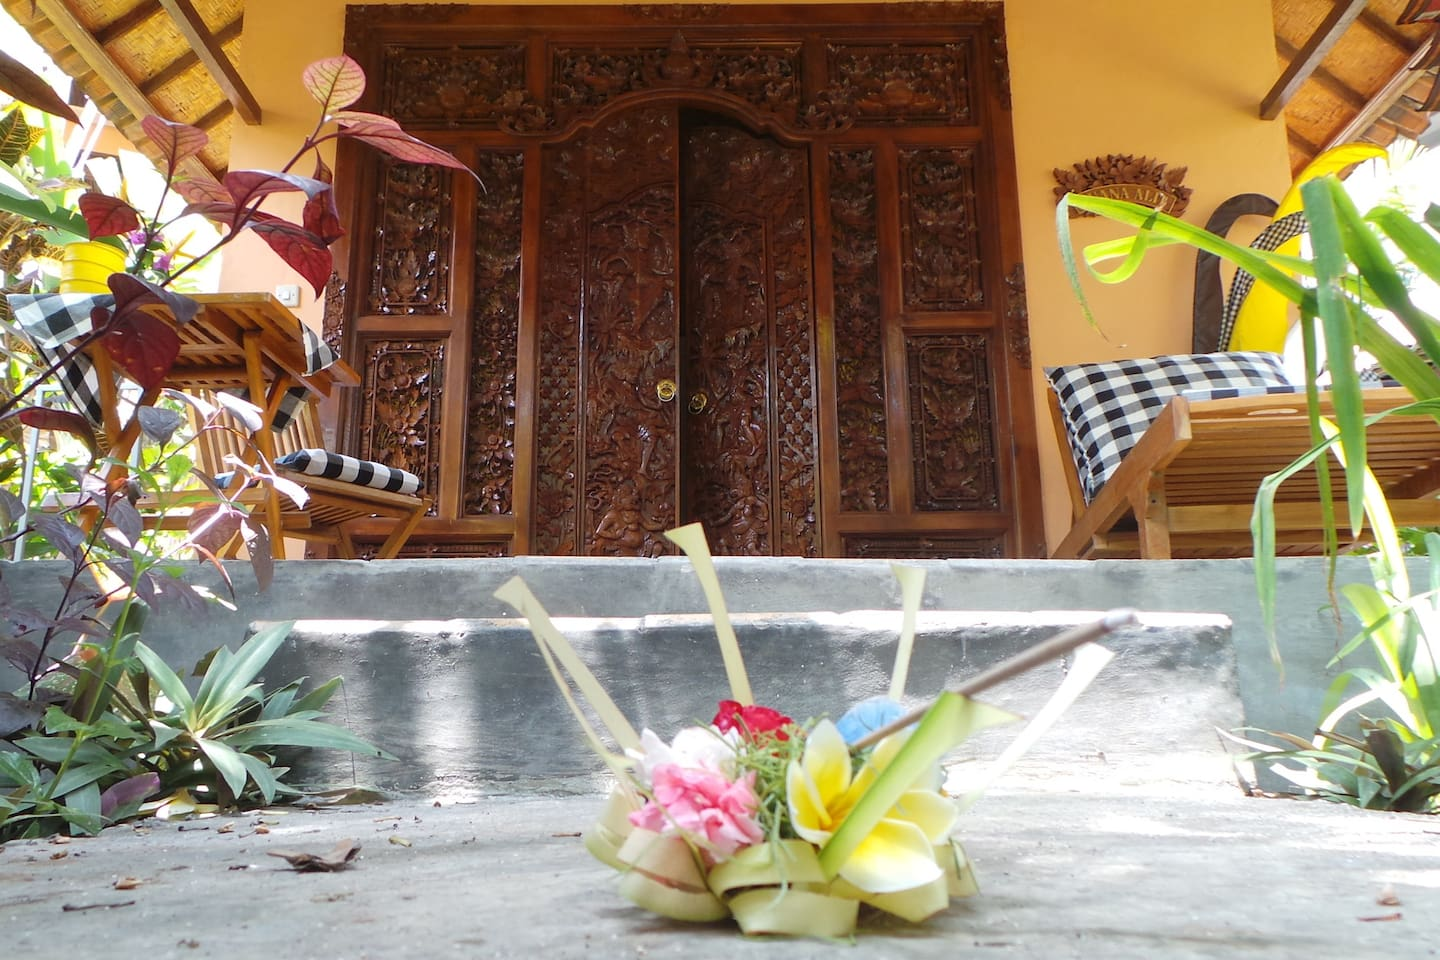 Buana Alit is blessed and protected every day with offerings.